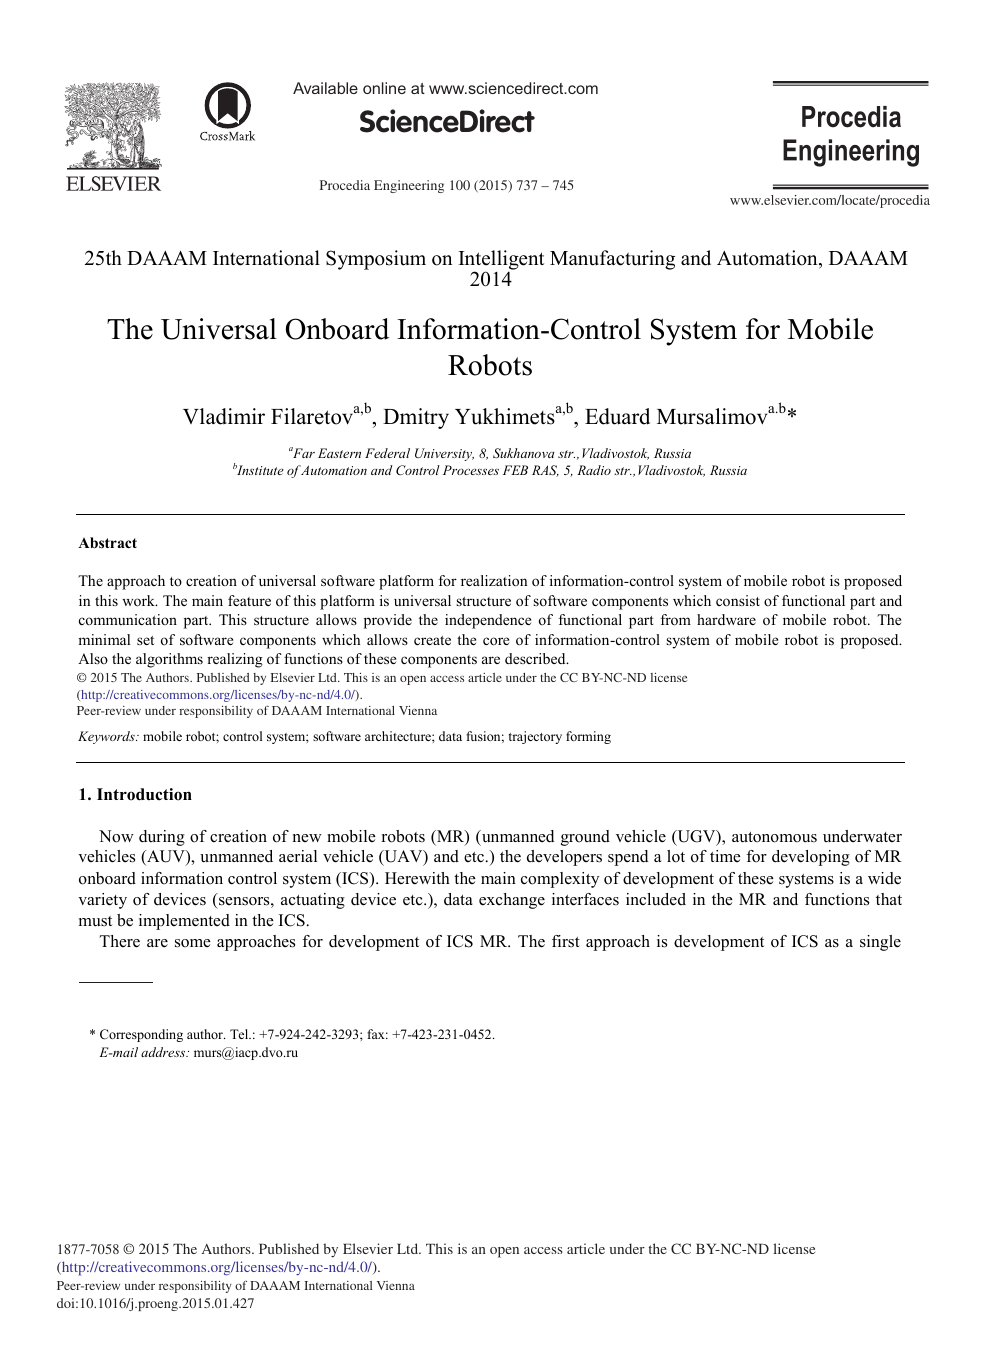 The Universal Onboard Information-control System for Mobile Robots